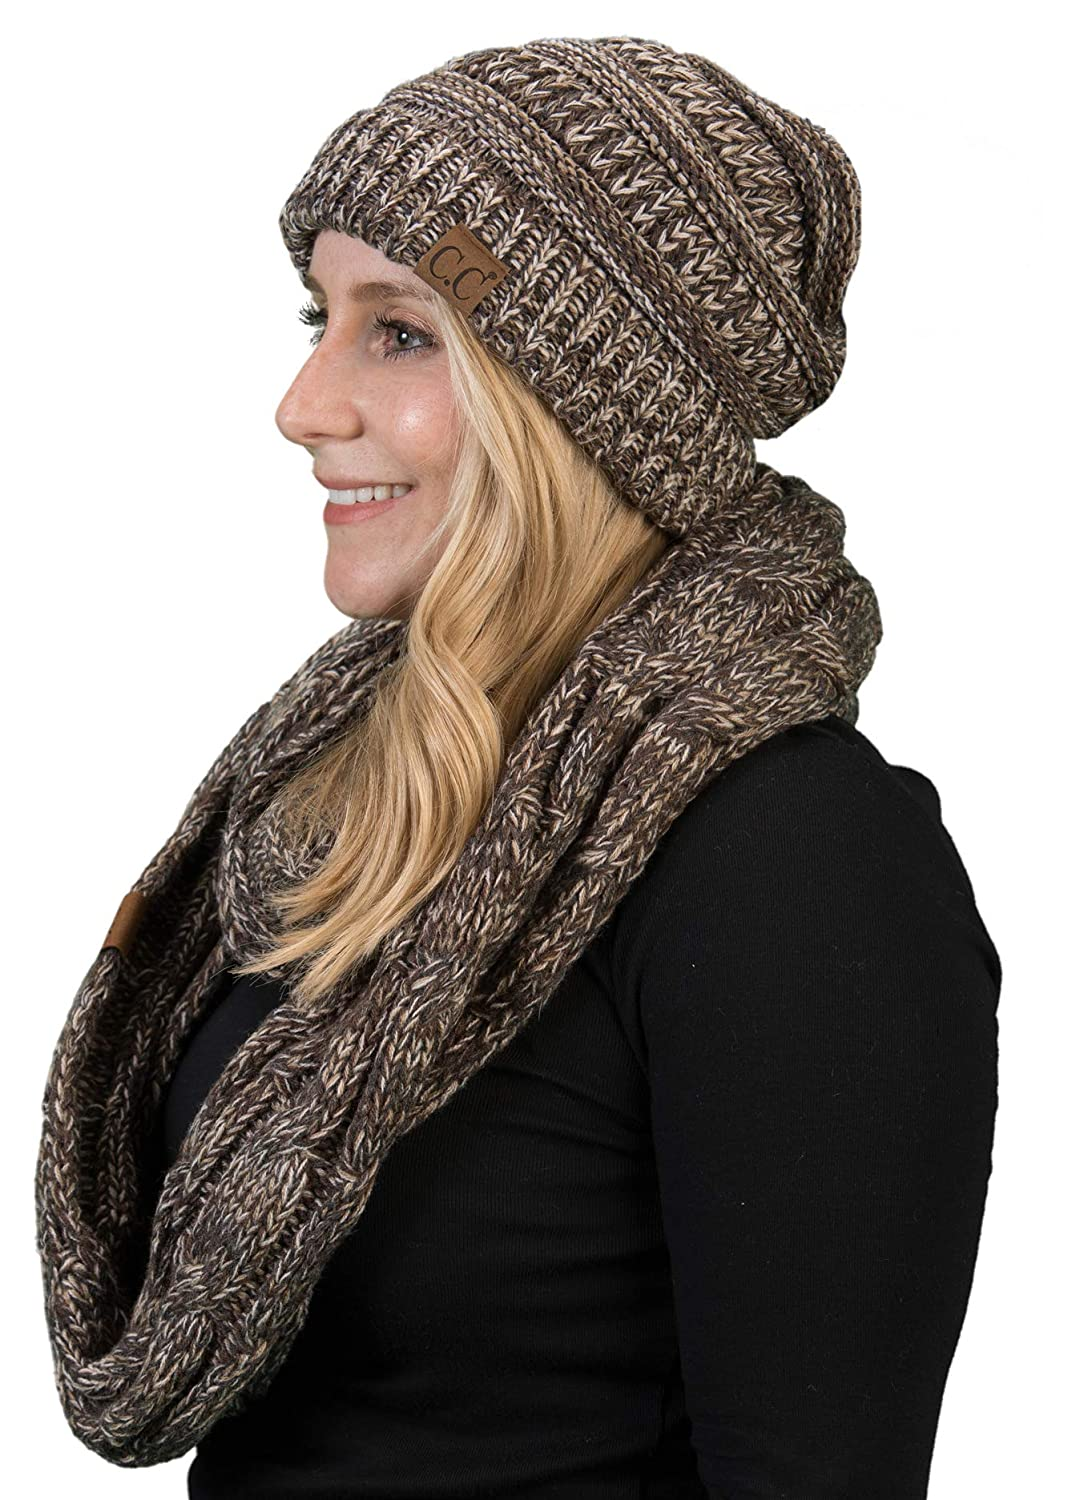 5a515608 aHS-6800-816.07 Regular Slouchy Beanie Matching Scarf Set Bundle - Brown  4#21 at Amazon Women's Clothing store: